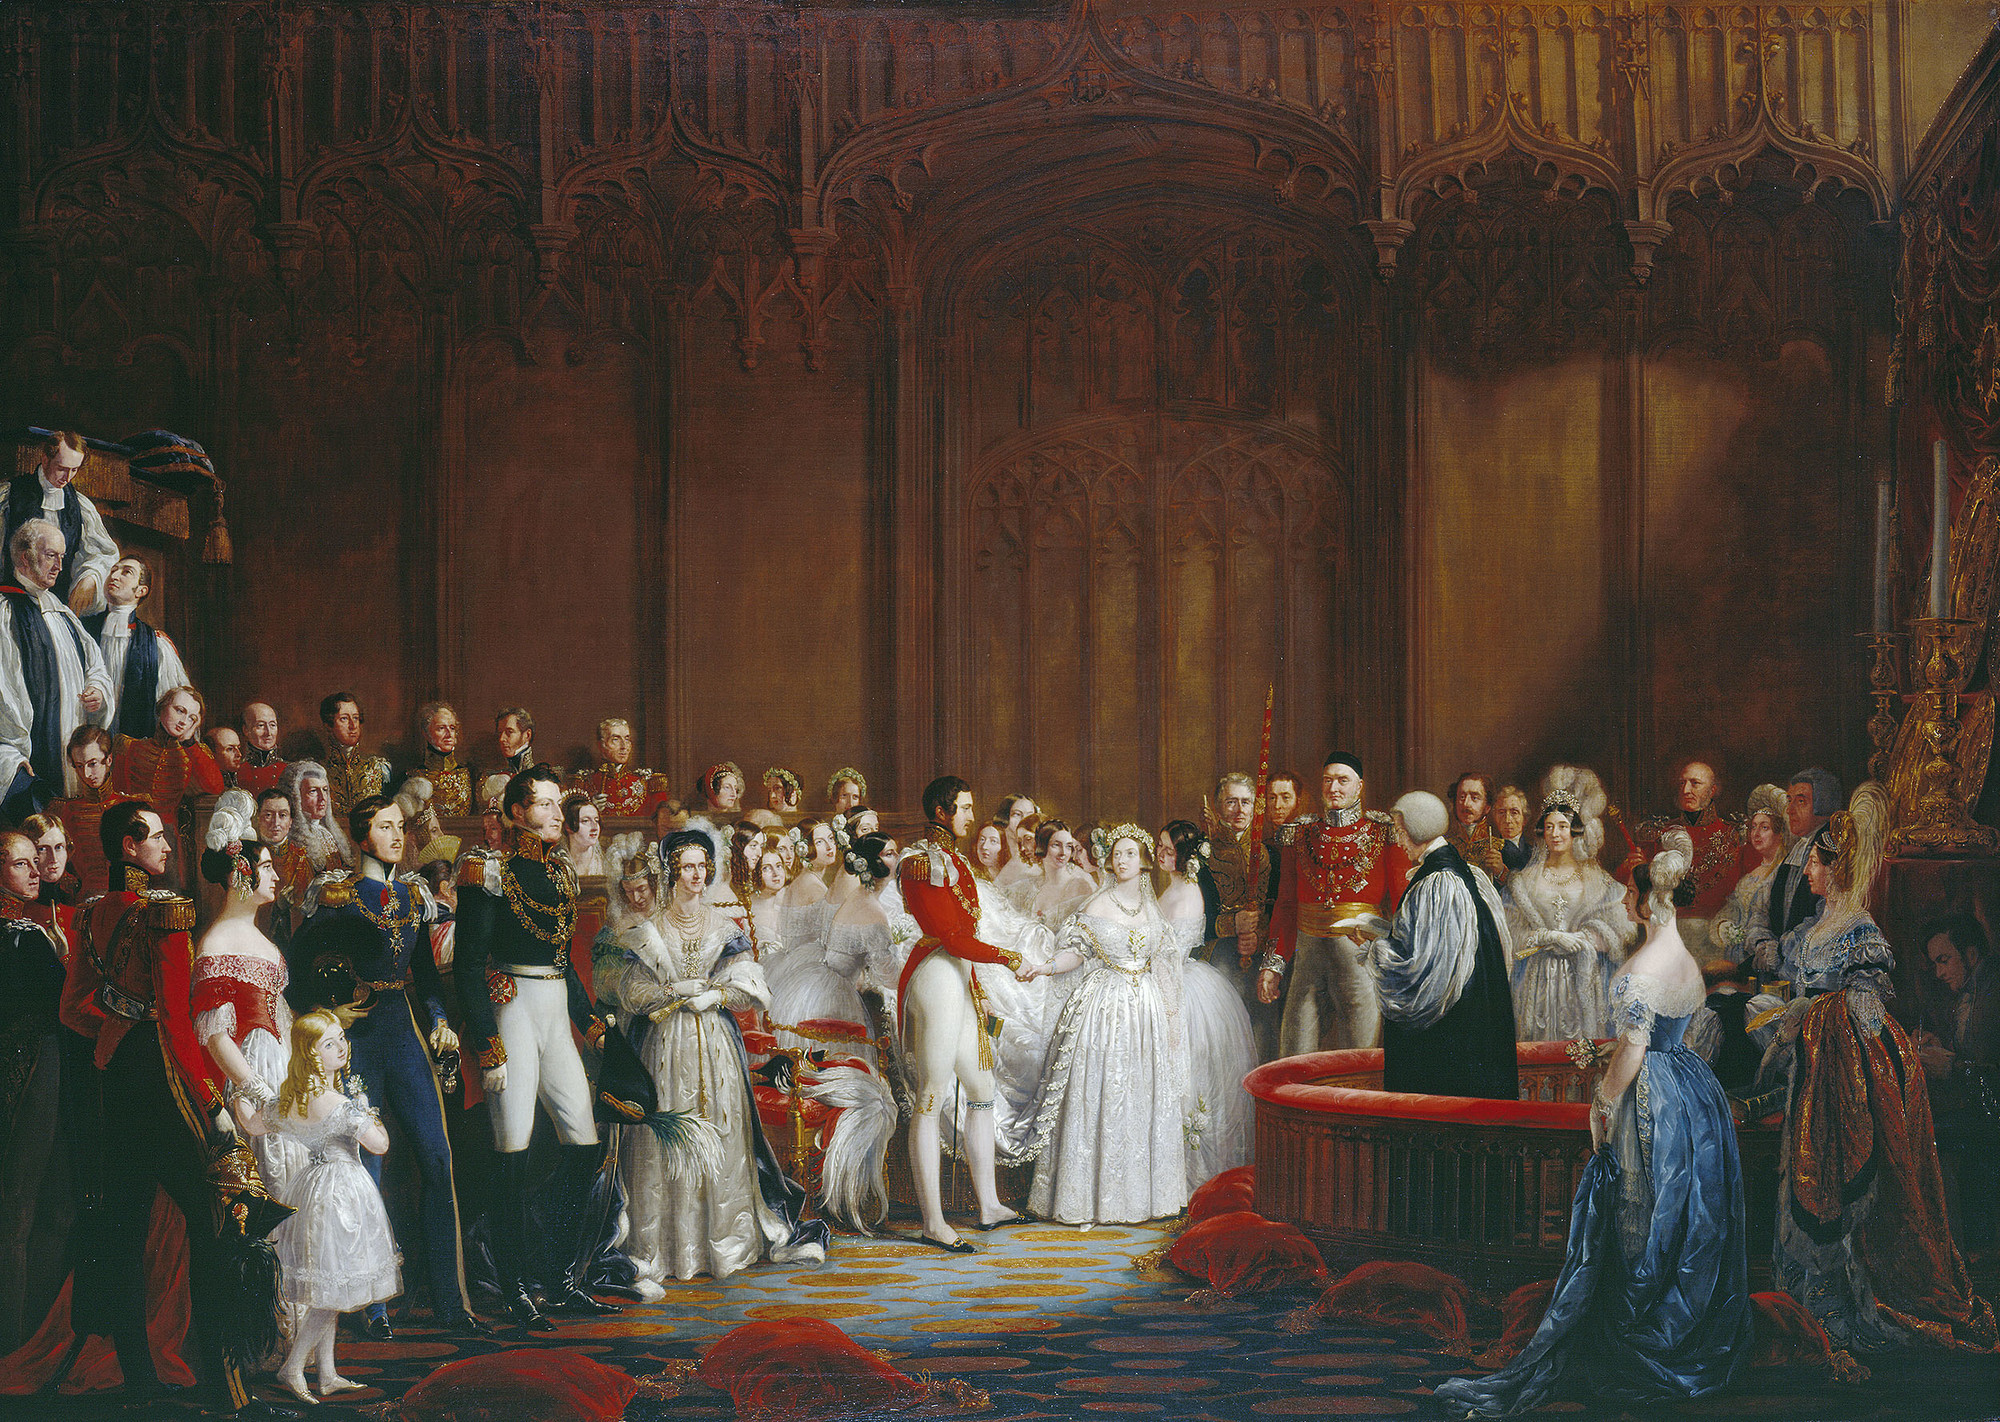 Sir George Hayter, The Marriage of Queen Victoria, ca. 1840-42, Royal Collection Trust, London, UK. queen victoria weddings